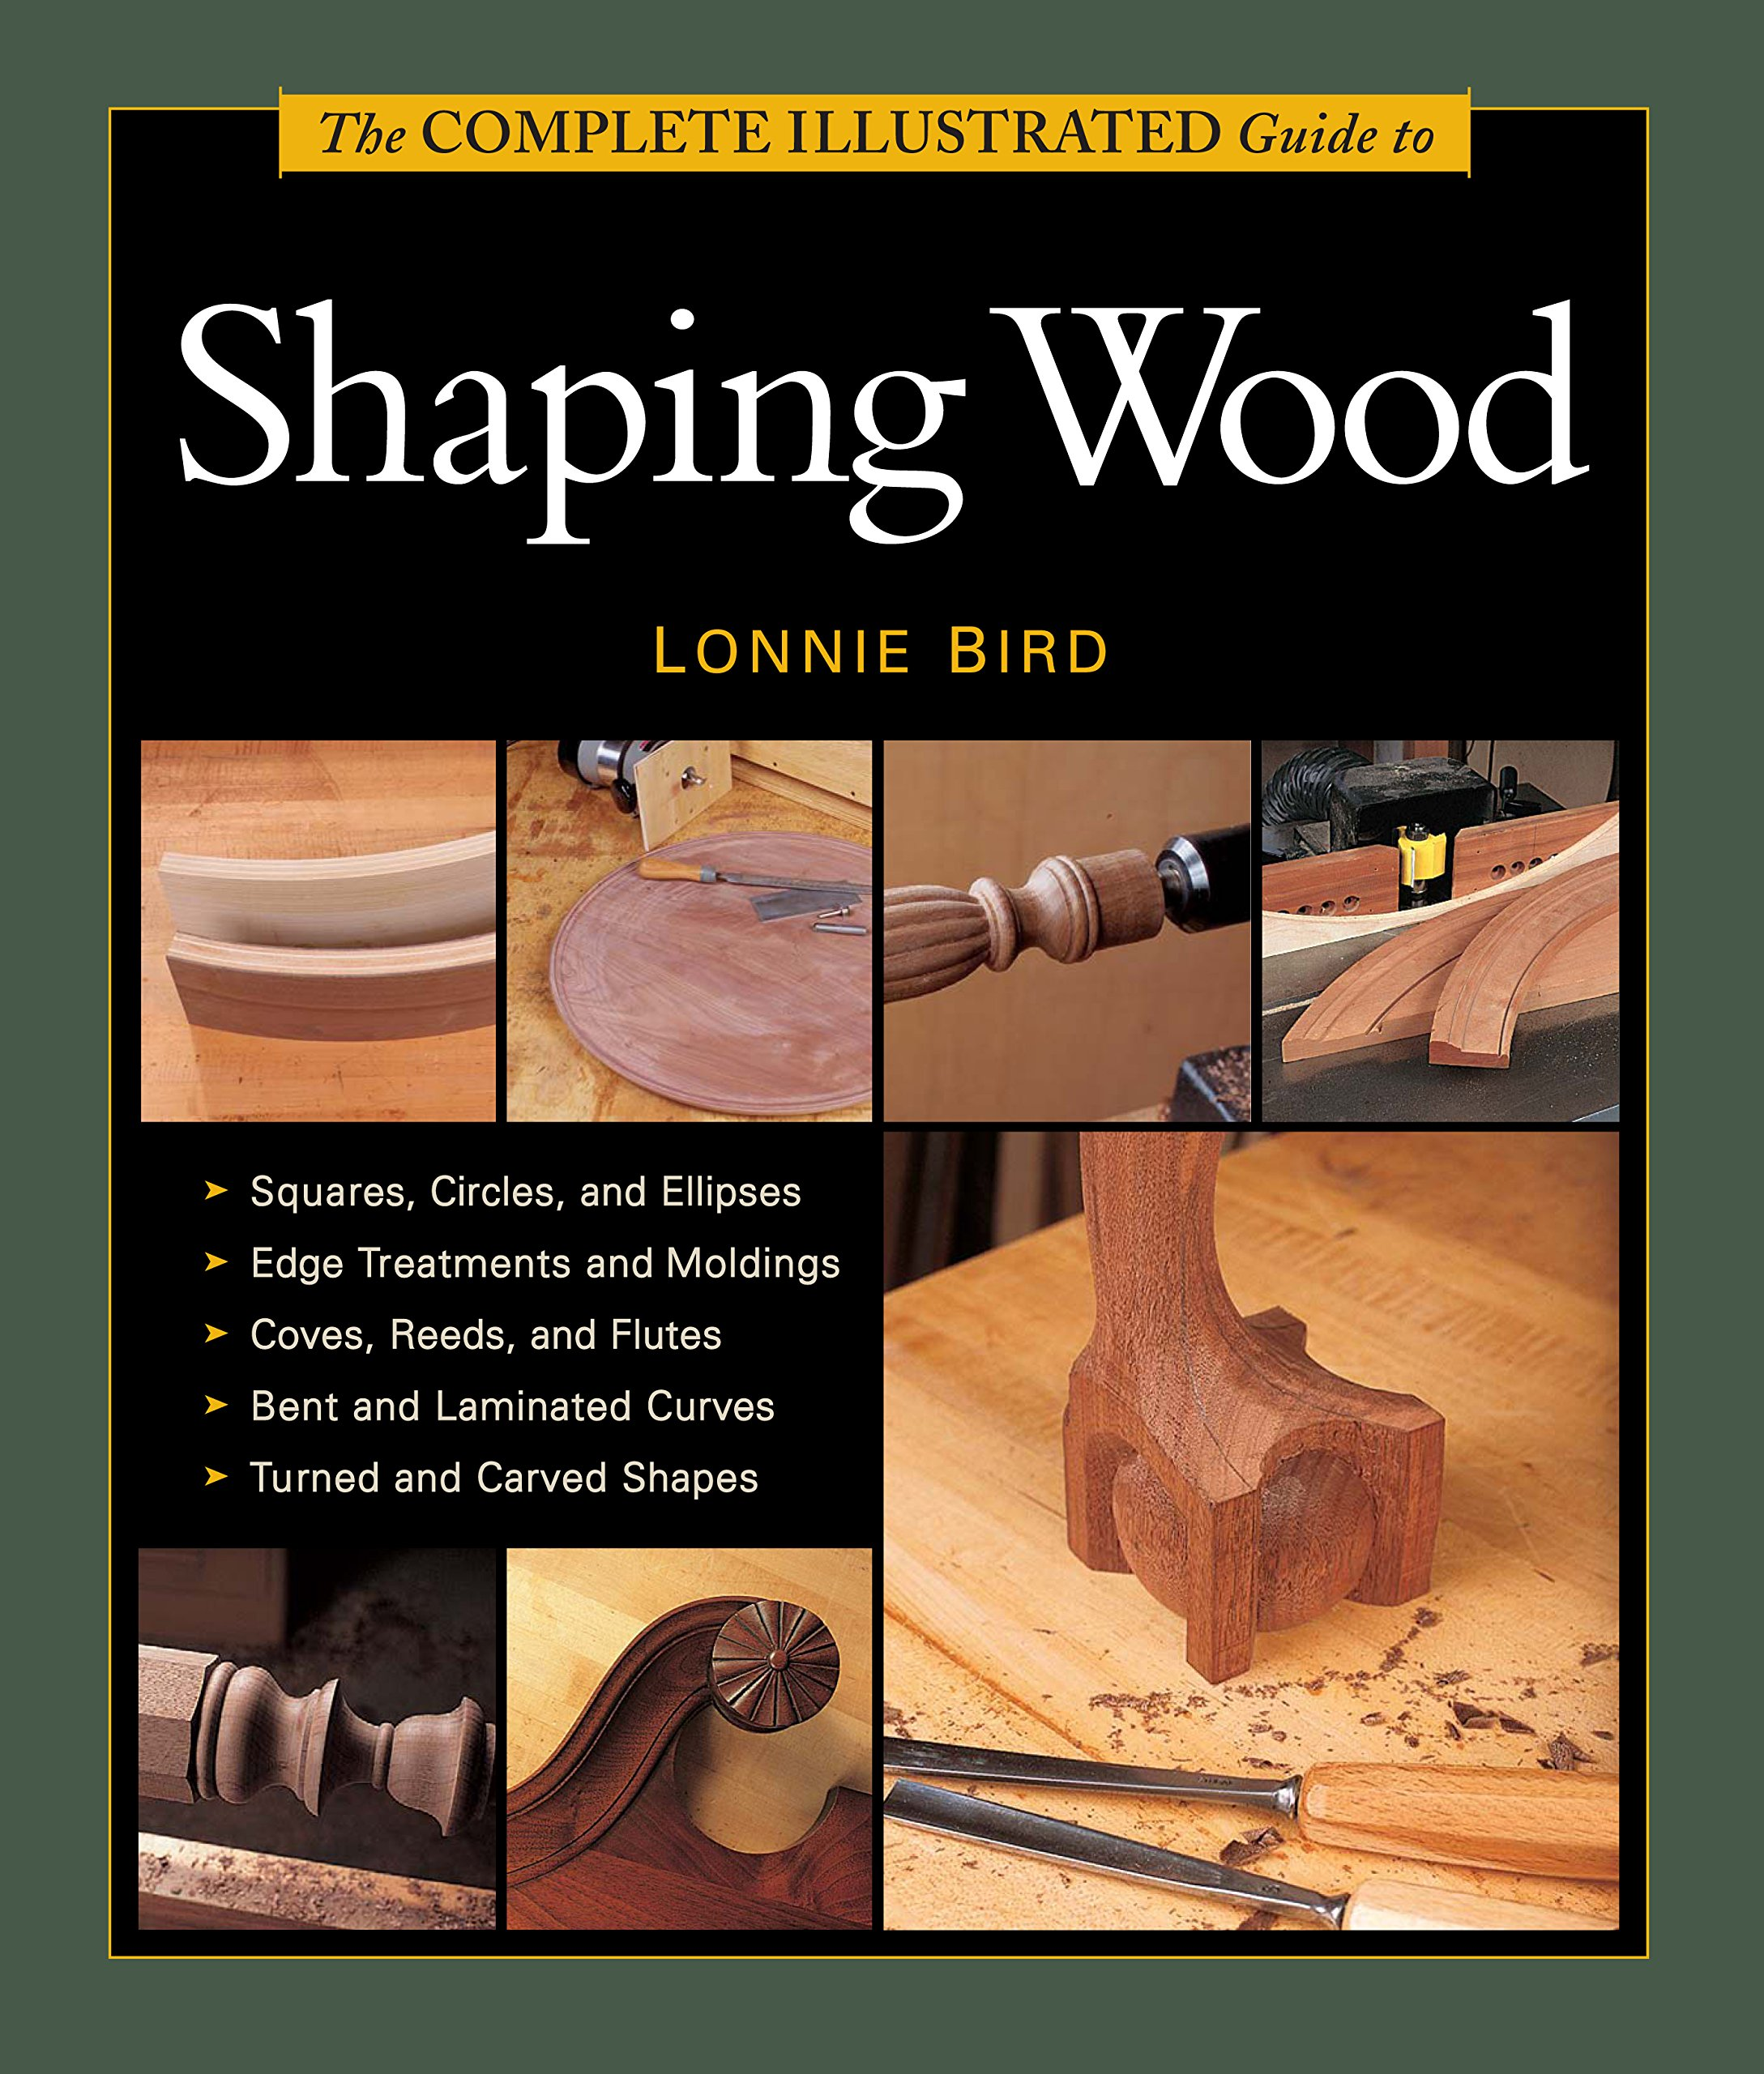 The Complete Illustrated Guide to Shaping Wood (Complete Illustrated Guides (Taunton)) pdf